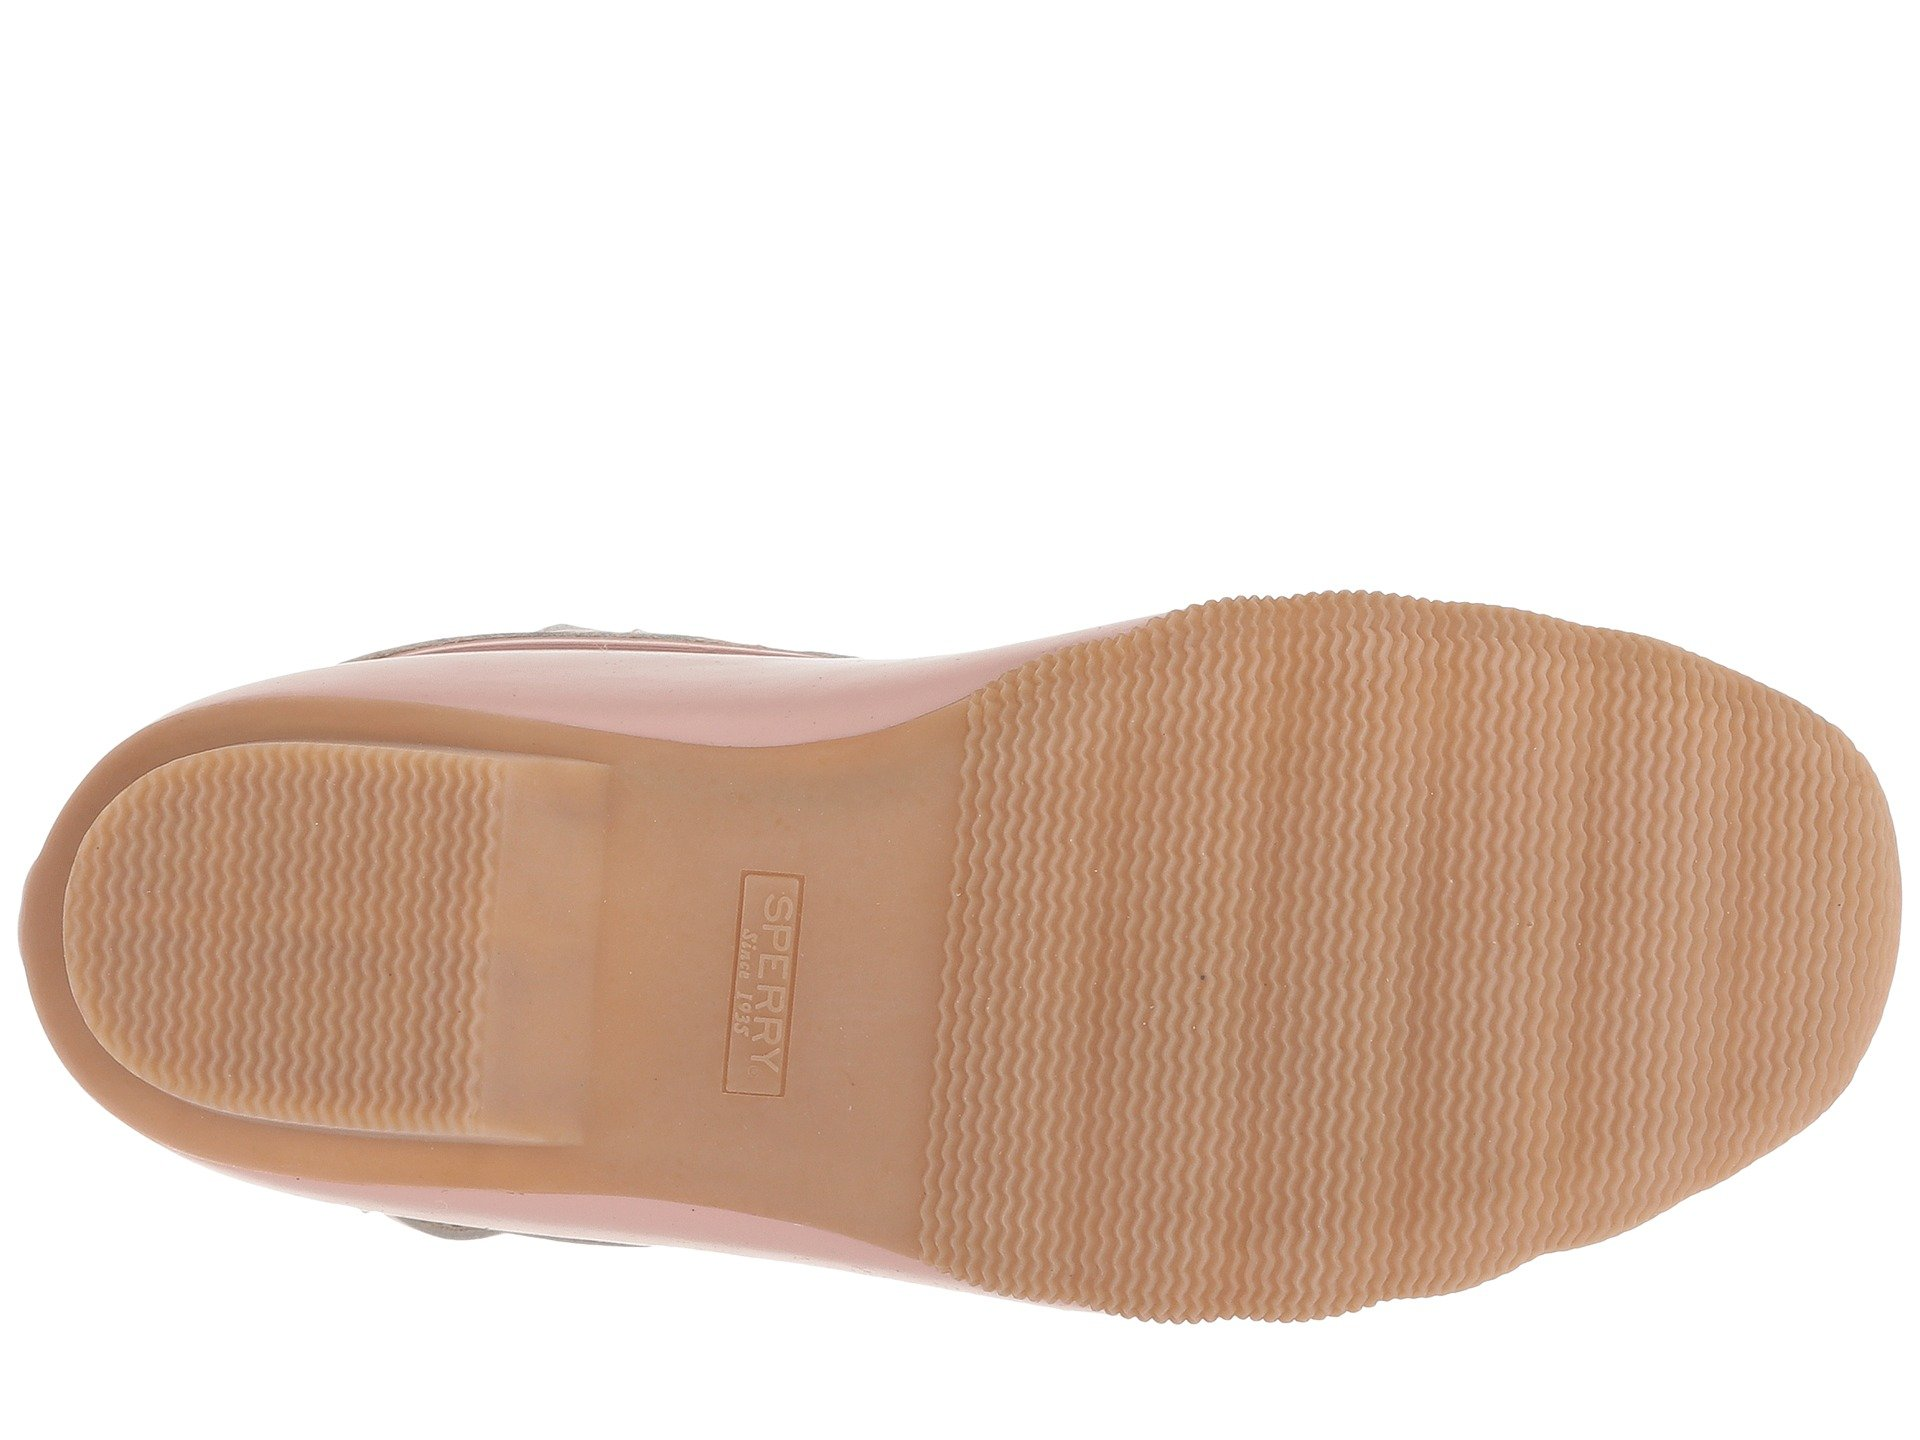 Sperry Rose Shearwater ivory Sperry Shearwater Rose ivory ivory Rose Sperry Rose Sperry ivory Shearwater Shearwater Sperry PwAgHX